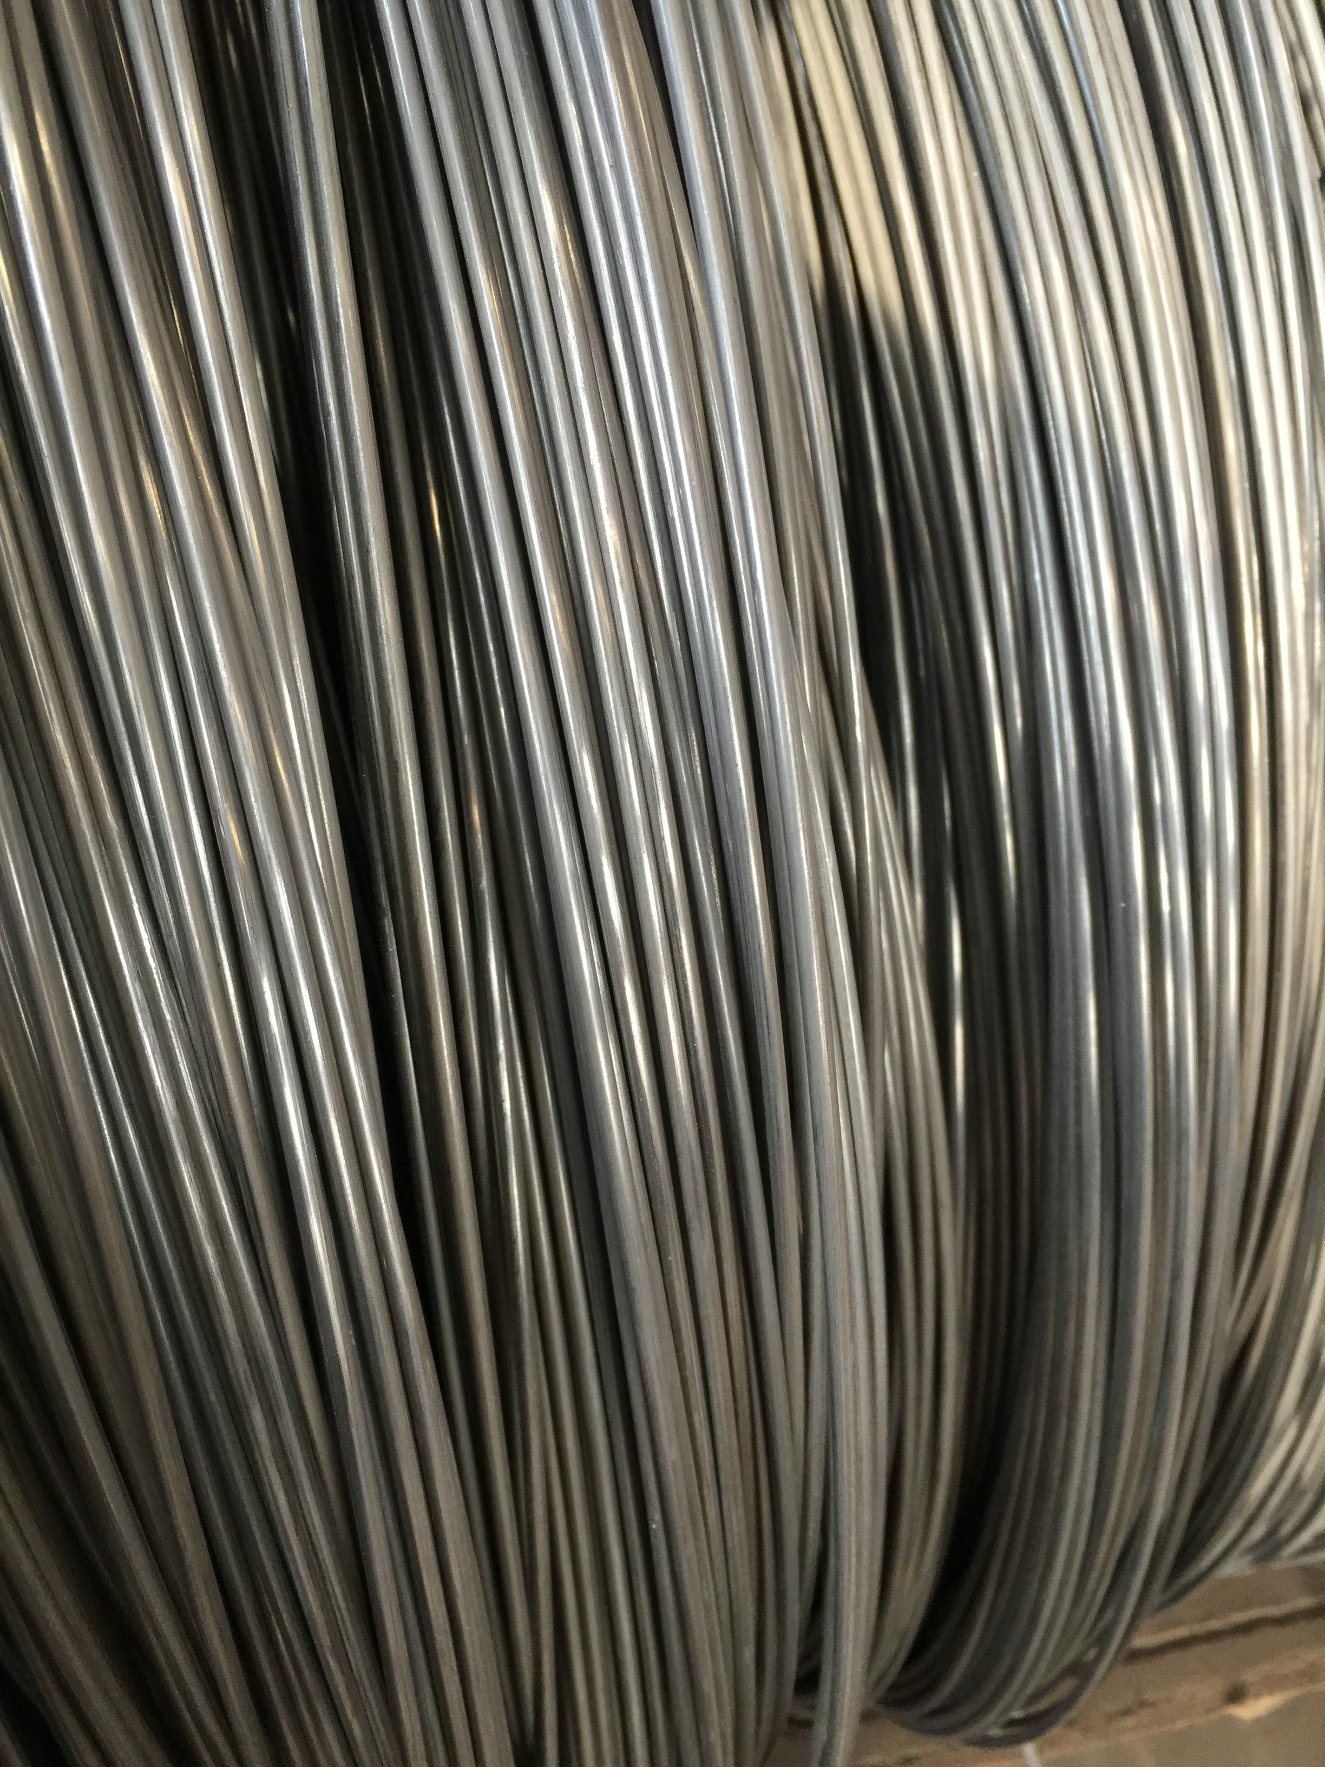 Spheroidized Annealed Steel Wire AISI1022 for Screws Production